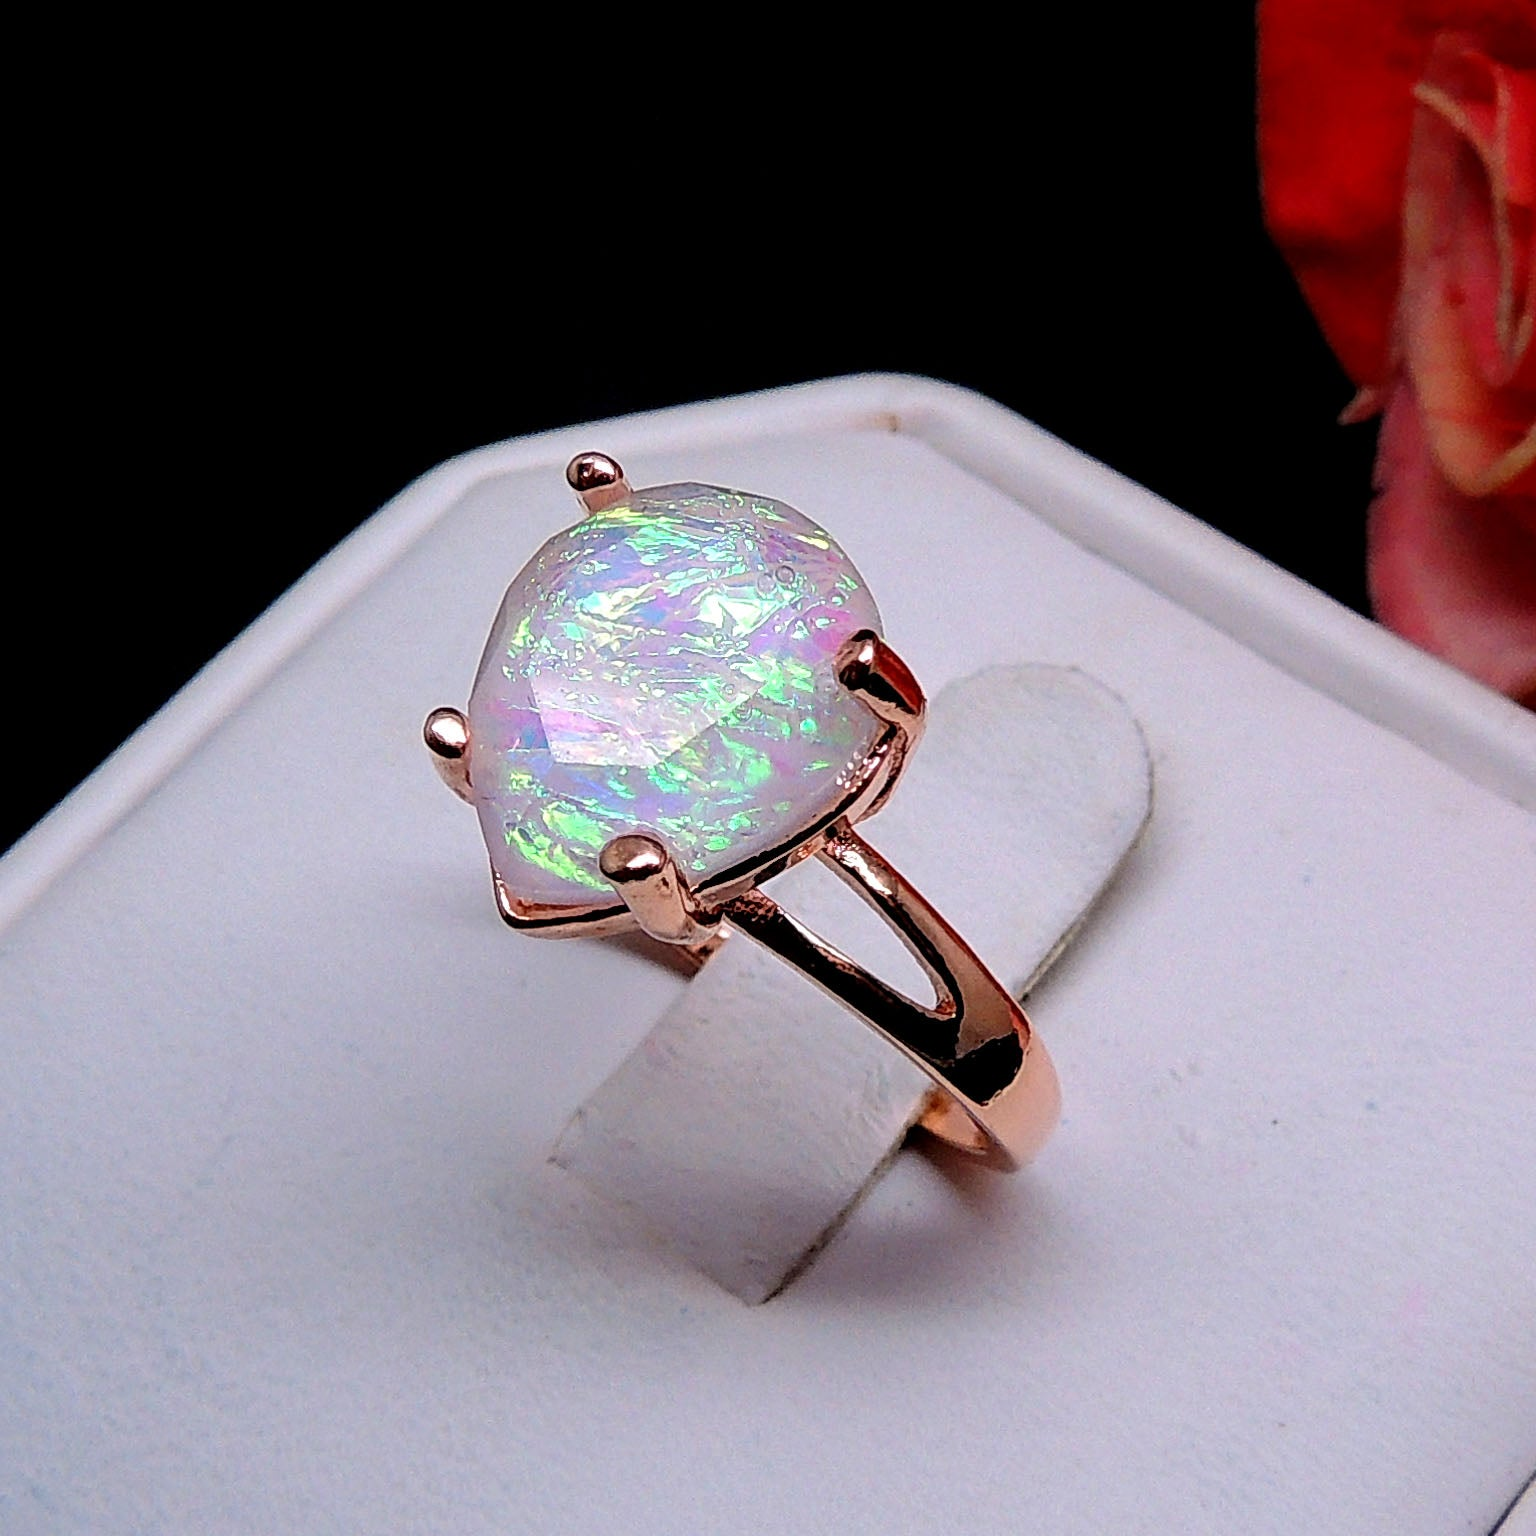 Aviana Large Teardrop Simulated Fire Opal Ring - Ginger Lyne Collection